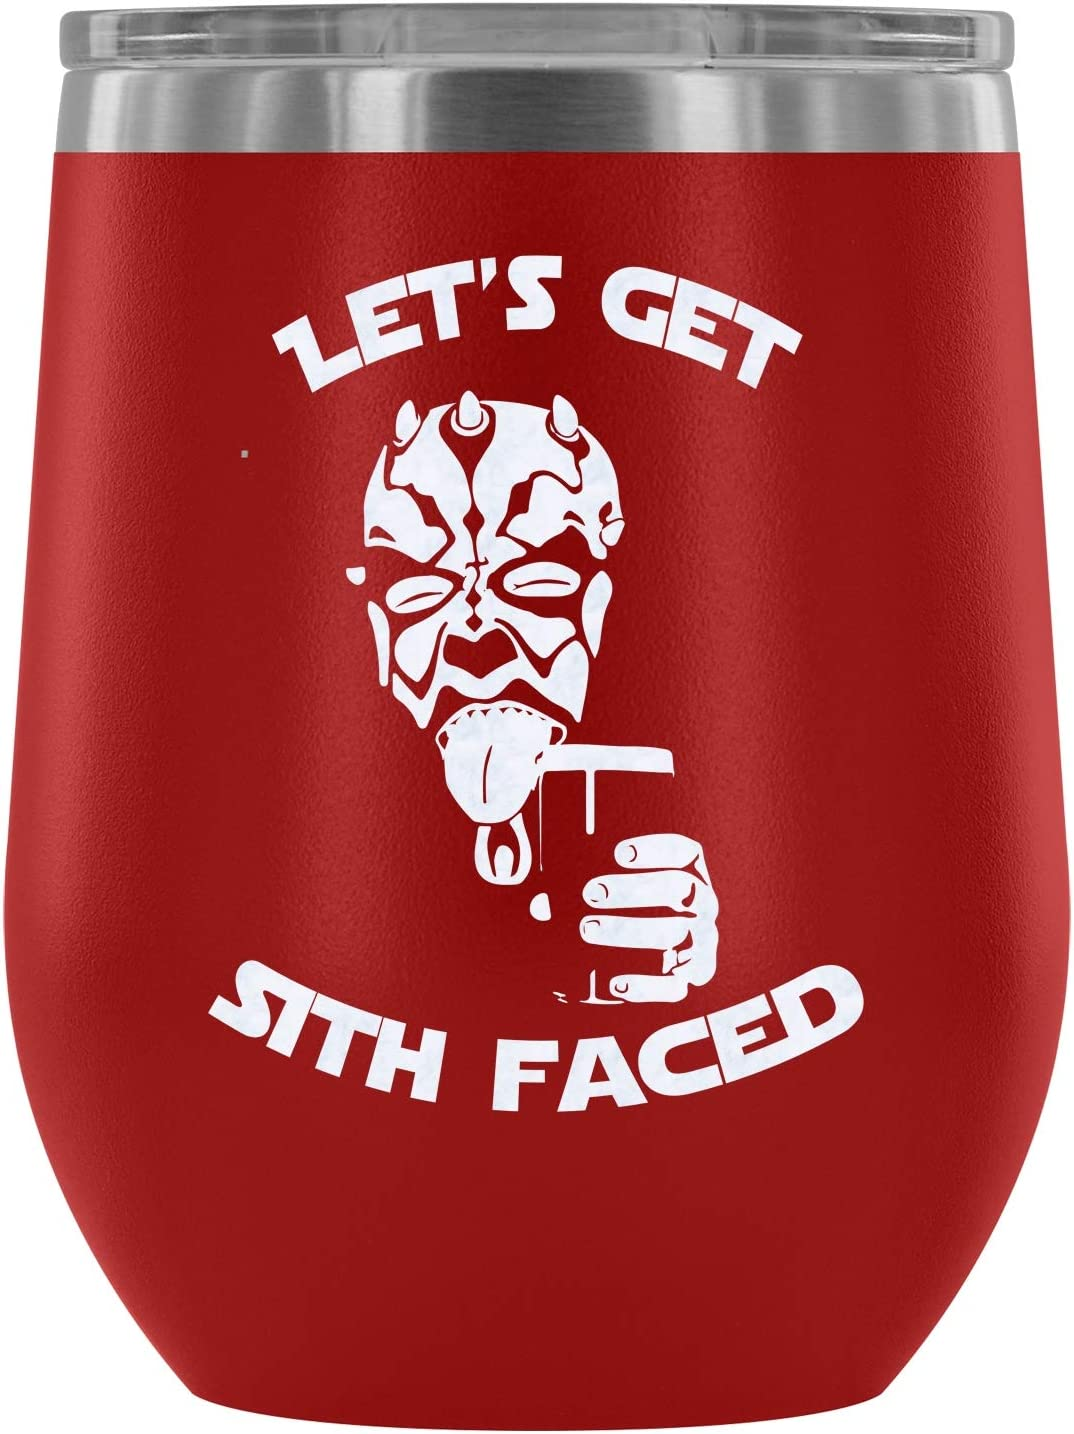 Steel Stemless Wine Glass Tumbler, Let's Get Sith Faced Vacuum Insulated Wine Tumbler, Darth Vader Star Wars Wine Tumbler (Wine Tumbler 12Oz - Red)